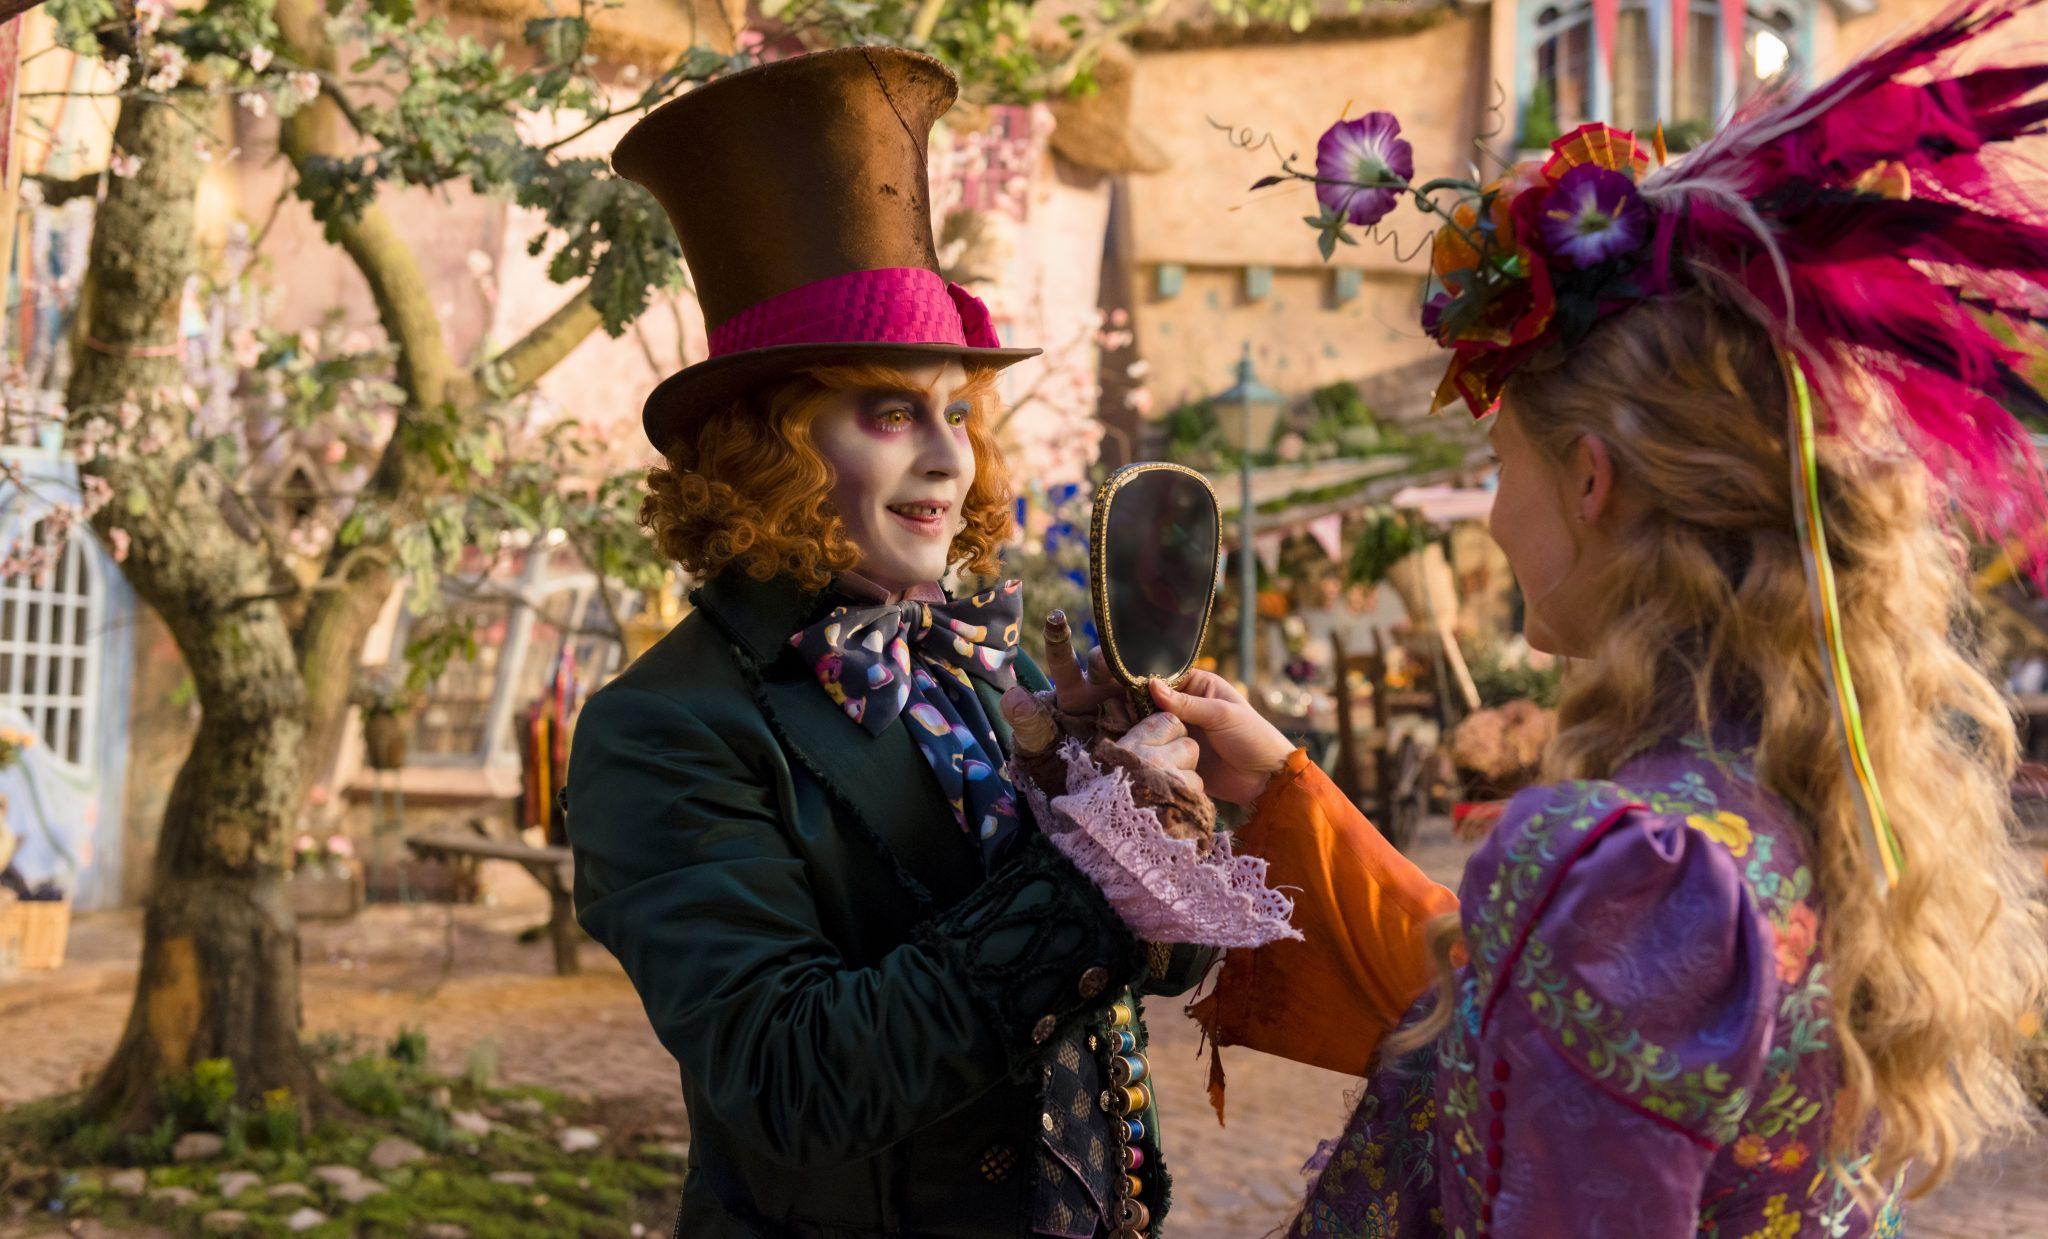 Review: 'Alice Through the Looking Glass' Is Weird For All the Wrong Reasons